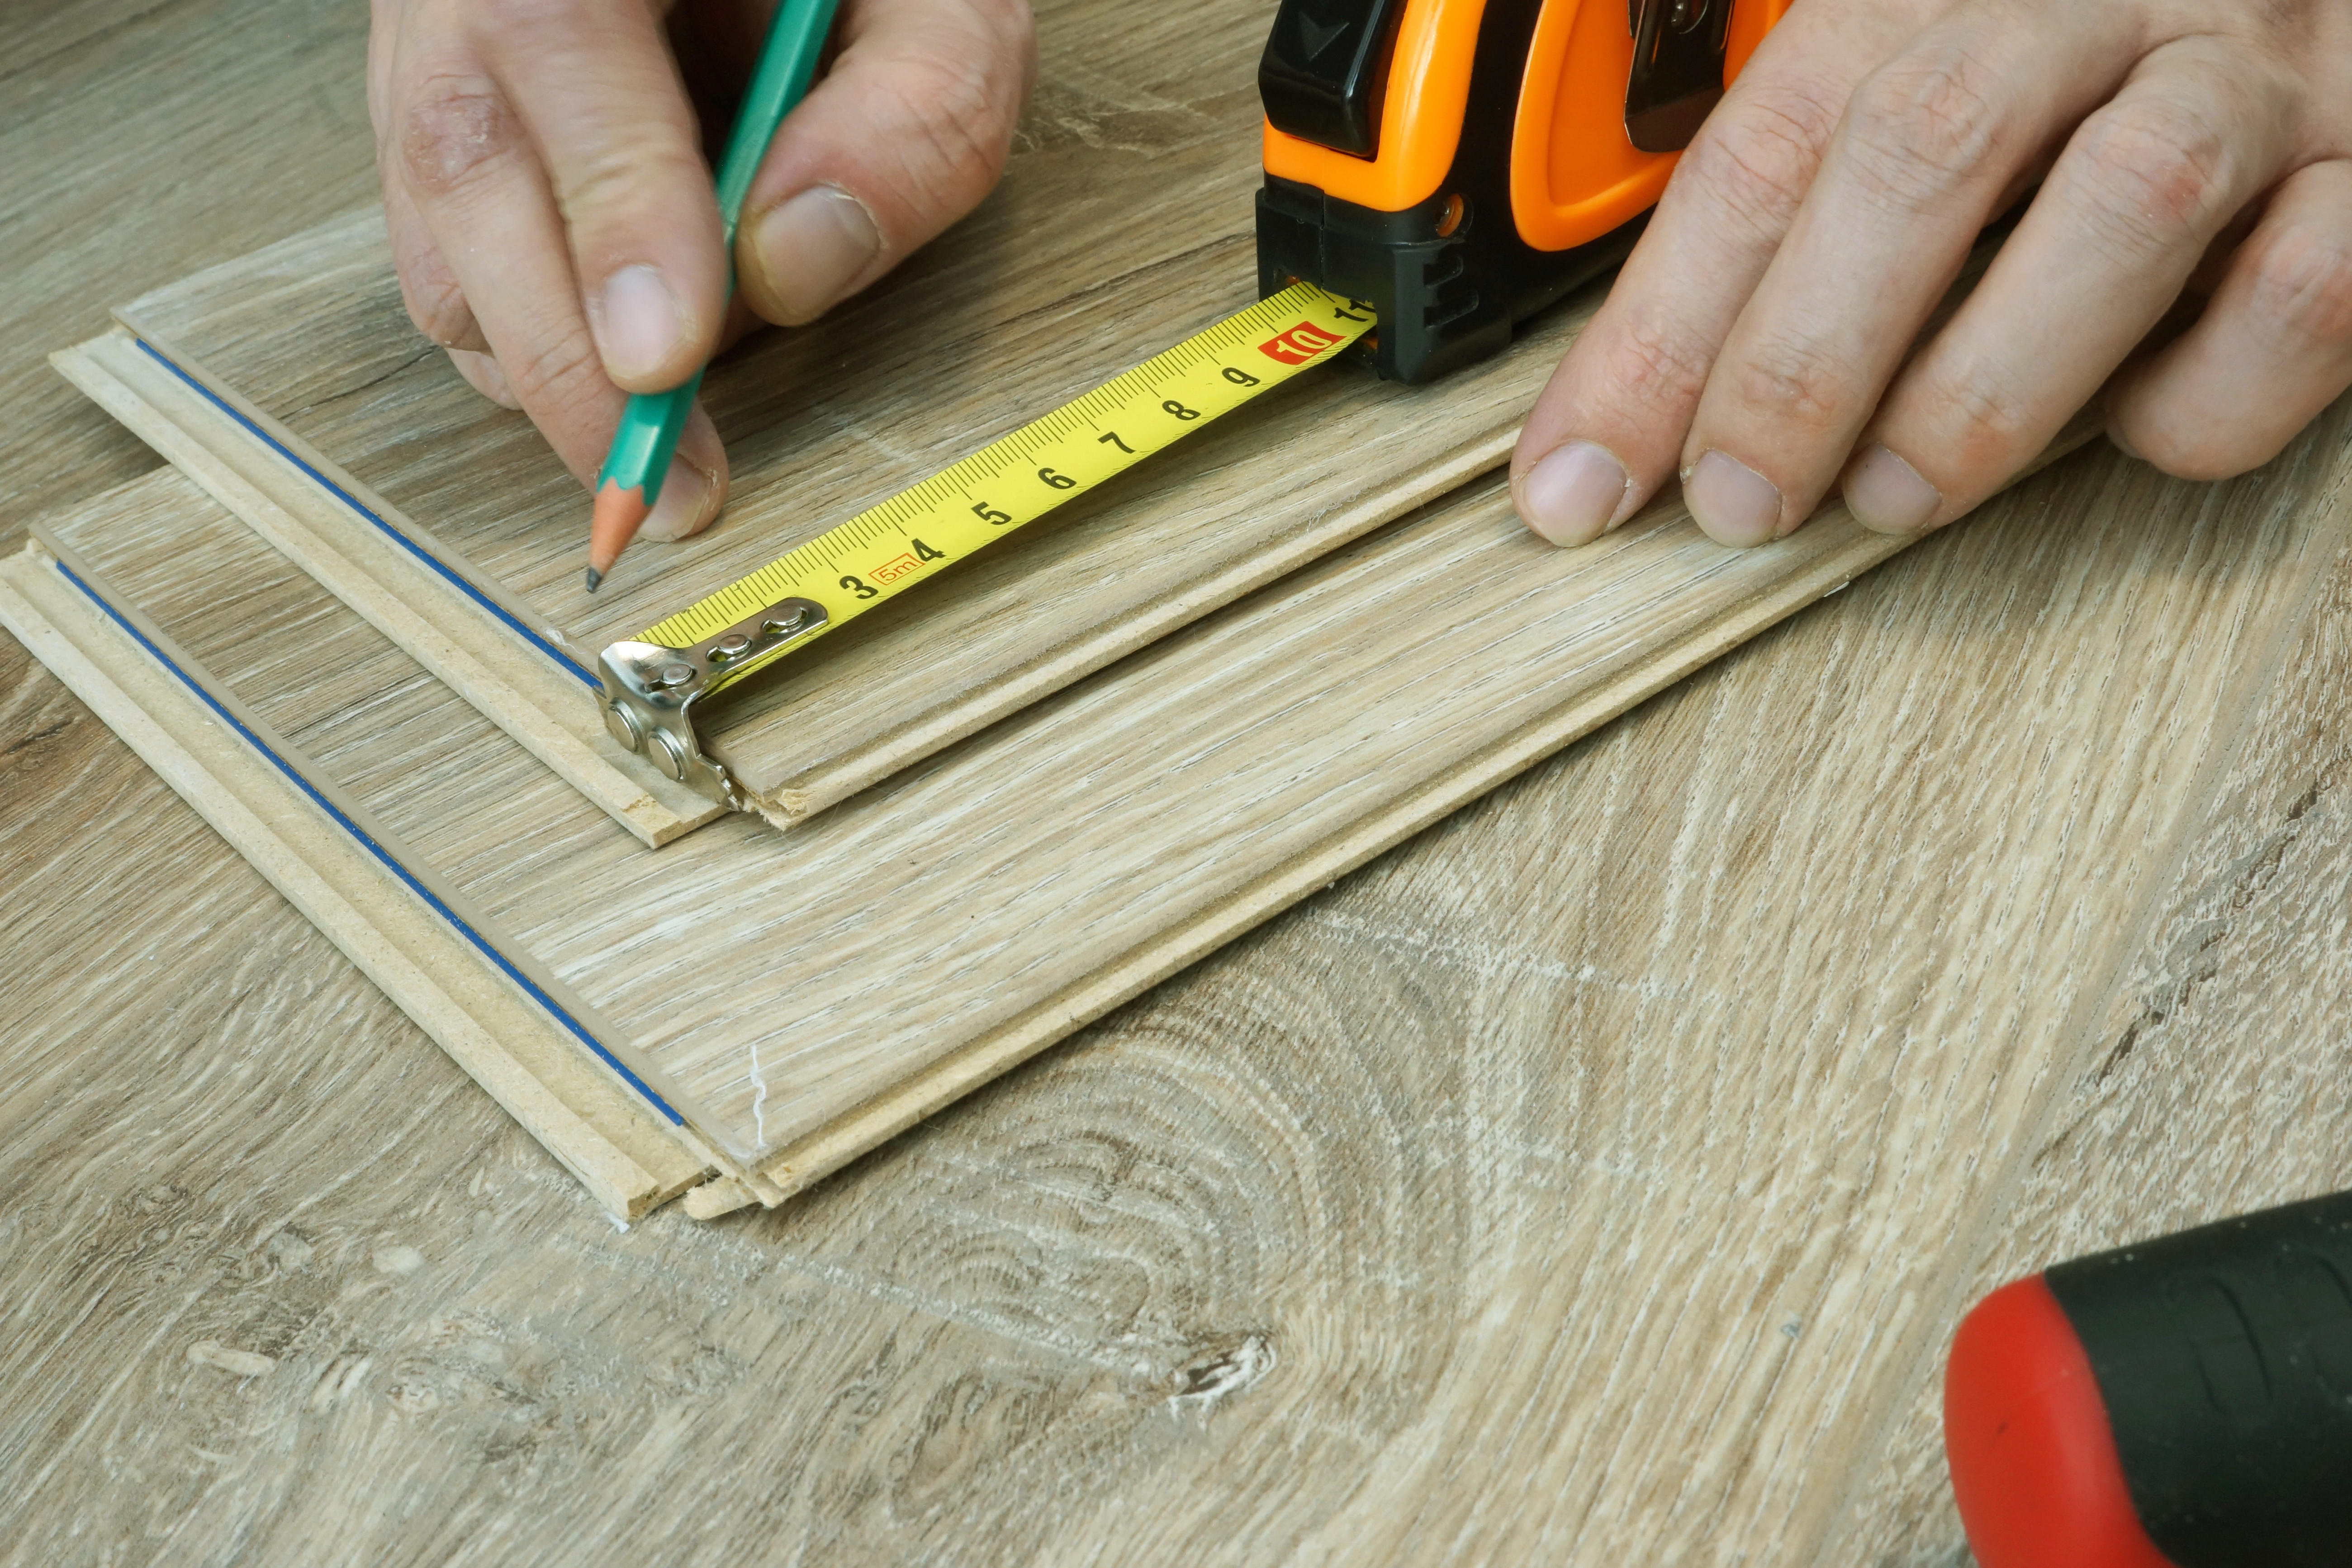 hardwood flooring tools required of how to calculate a rooms perimeter sciencing pertaining to a0b9b2dbbeab4c1f894c05153006acbf